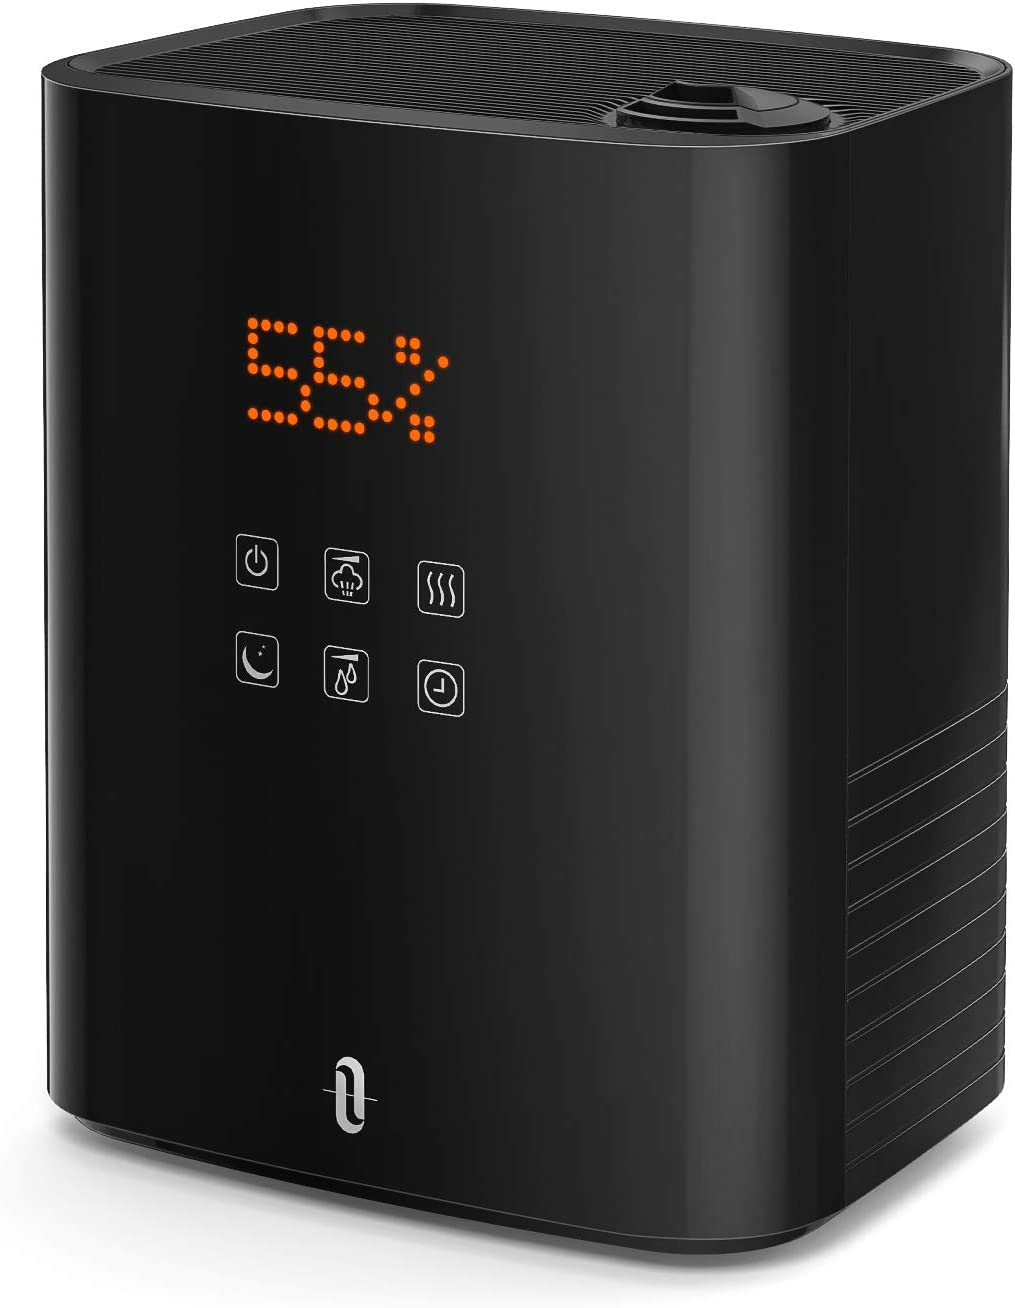 TaoTronics Warm and Cool Mist Humidifiers, 5.5L Top Fill Humidifier for Bedroom Large Room Baby, Separate Tank, Customized Humidity, Sleep Mode, LED Display, Auto Shut-Off